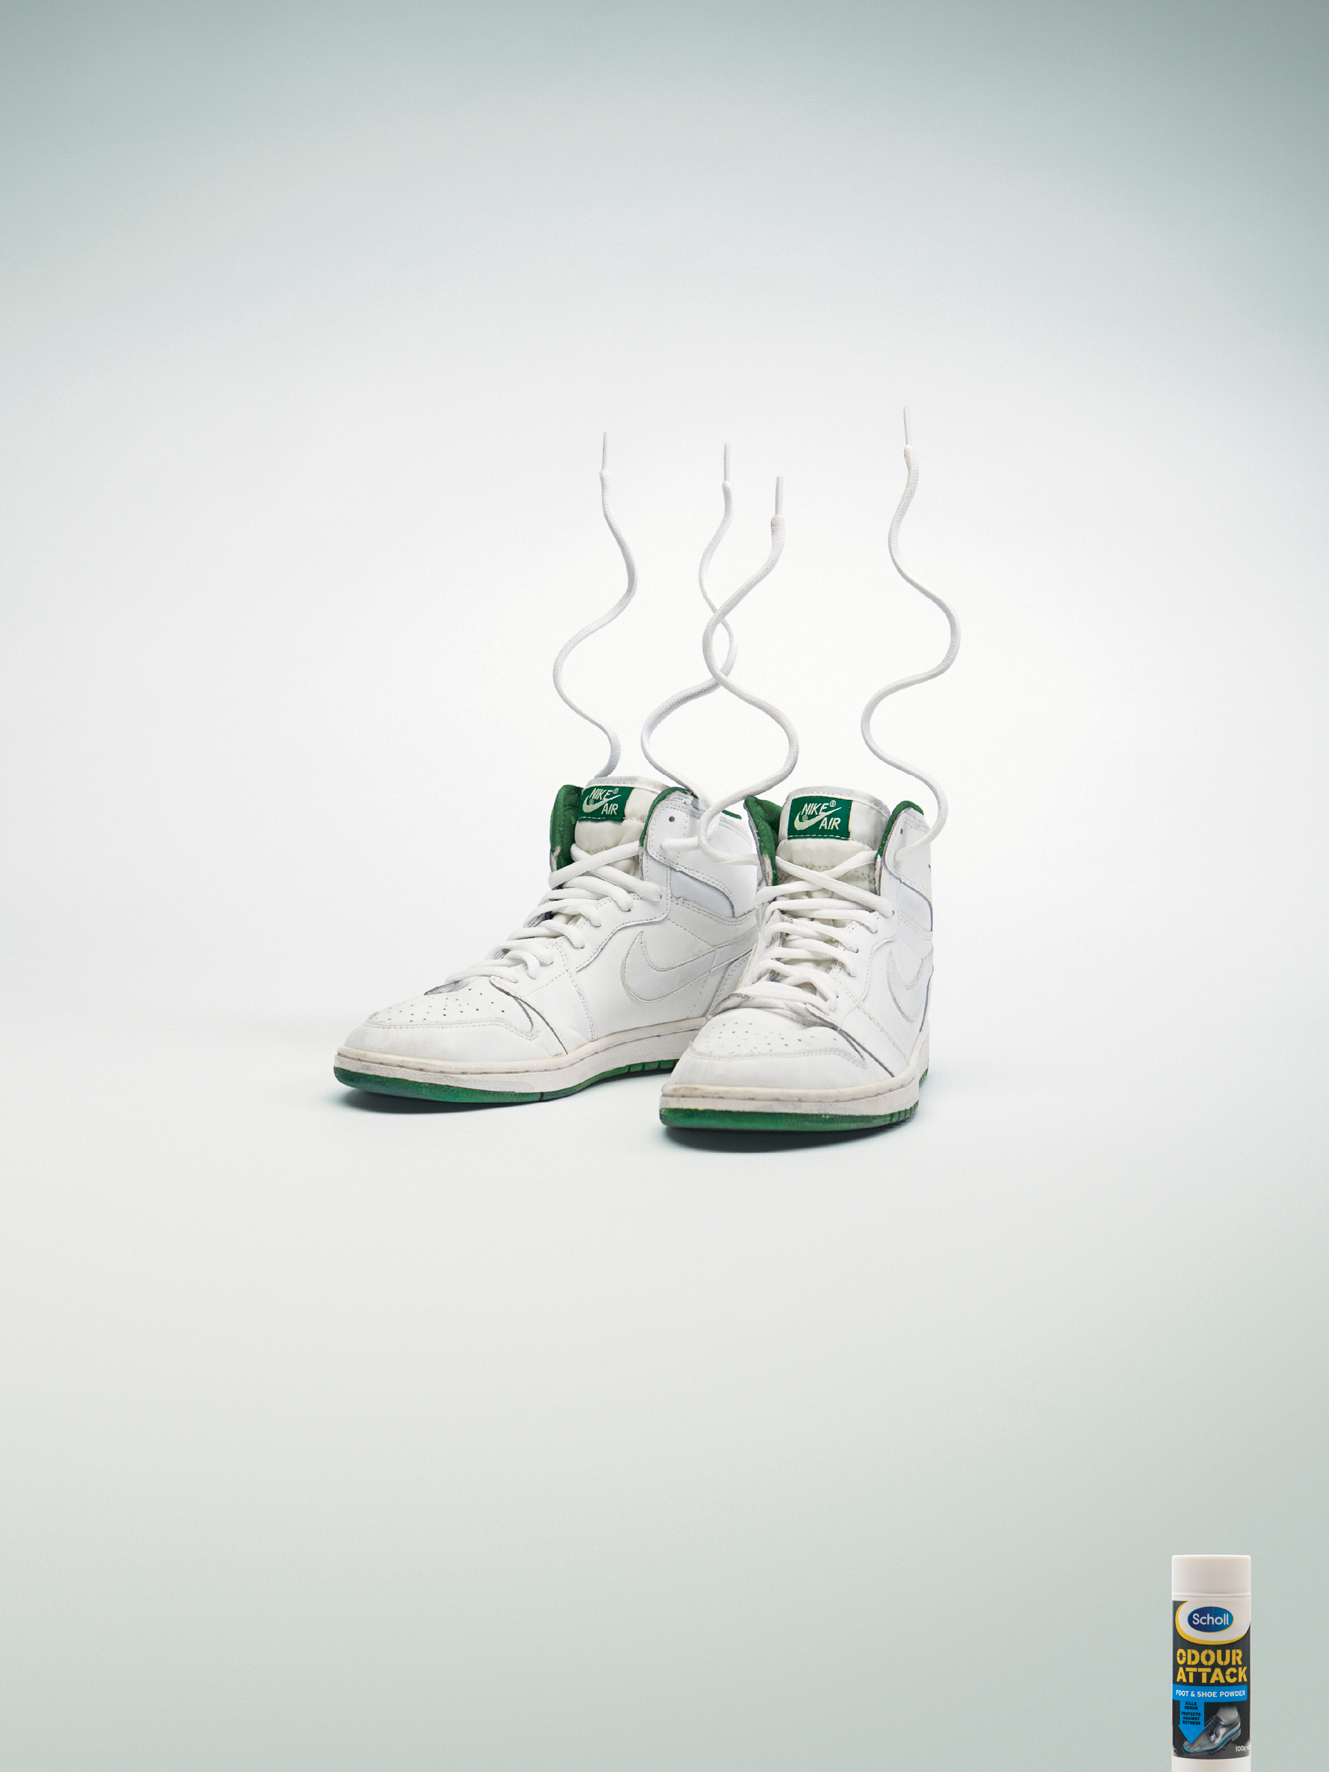 Nike shoes with laces on end in Scholl print advertisement